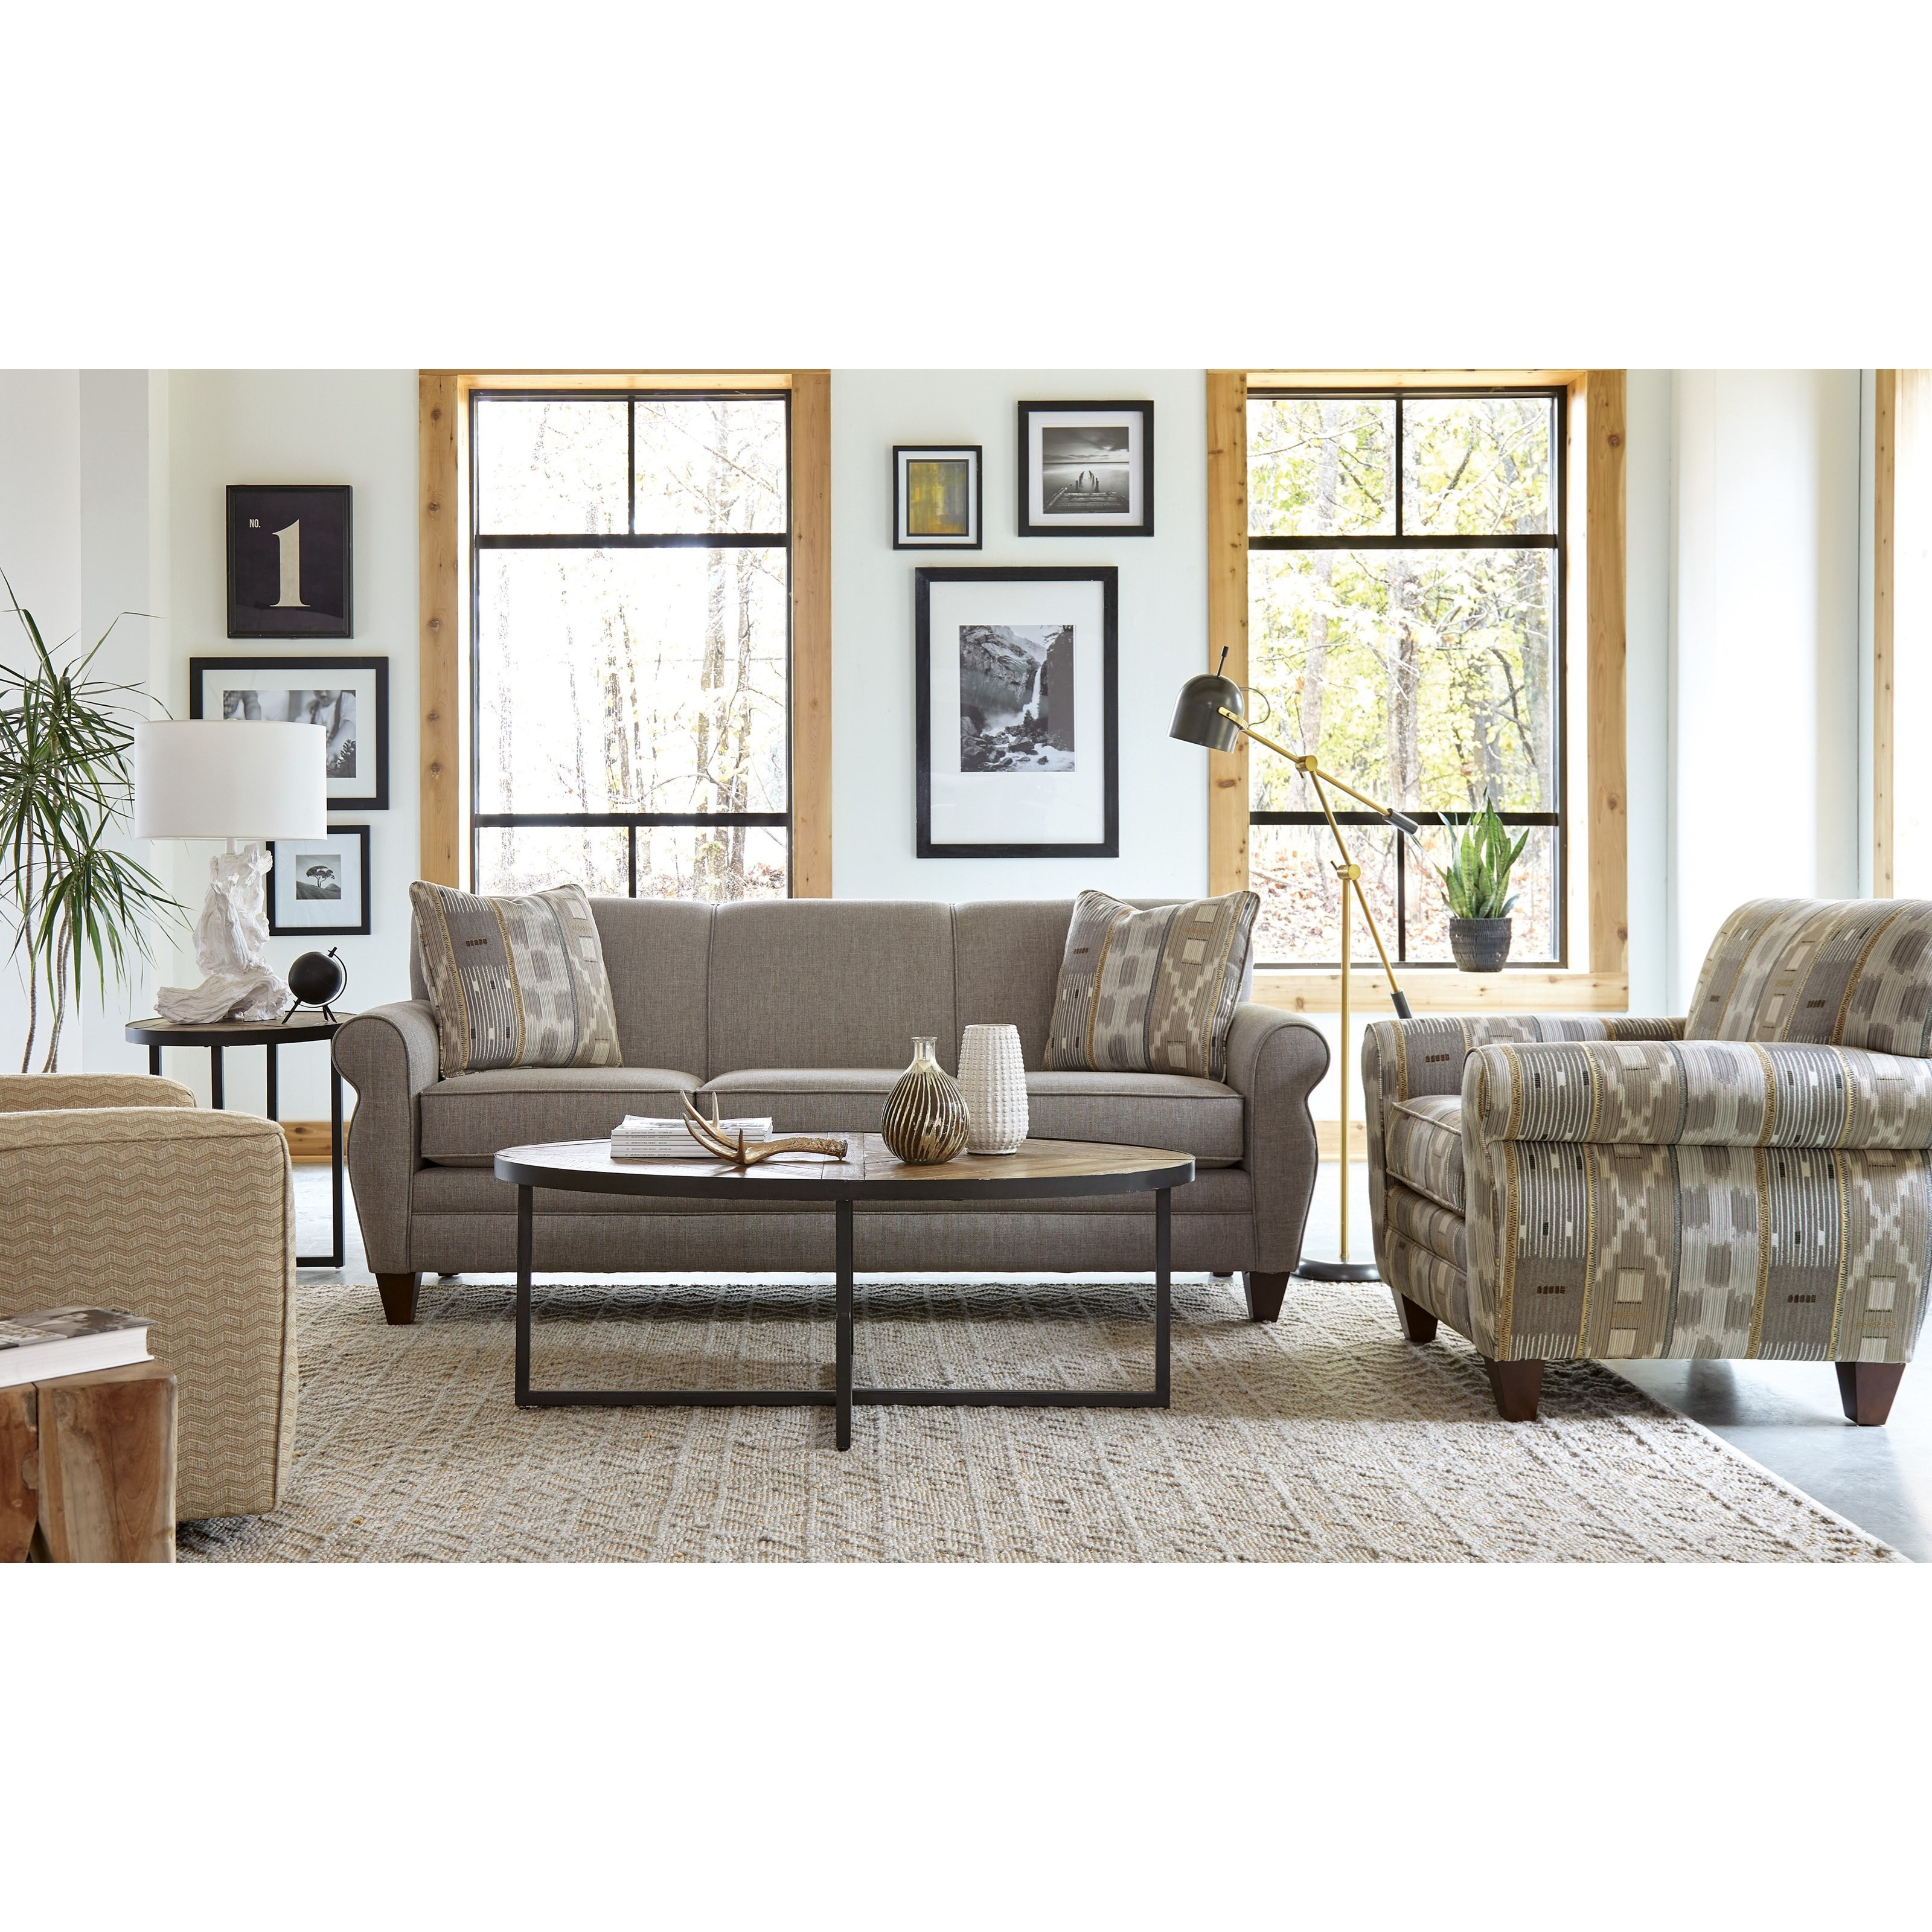 7388 Living Room Group by Craftmaster at Esprit Decor Home Furnishings